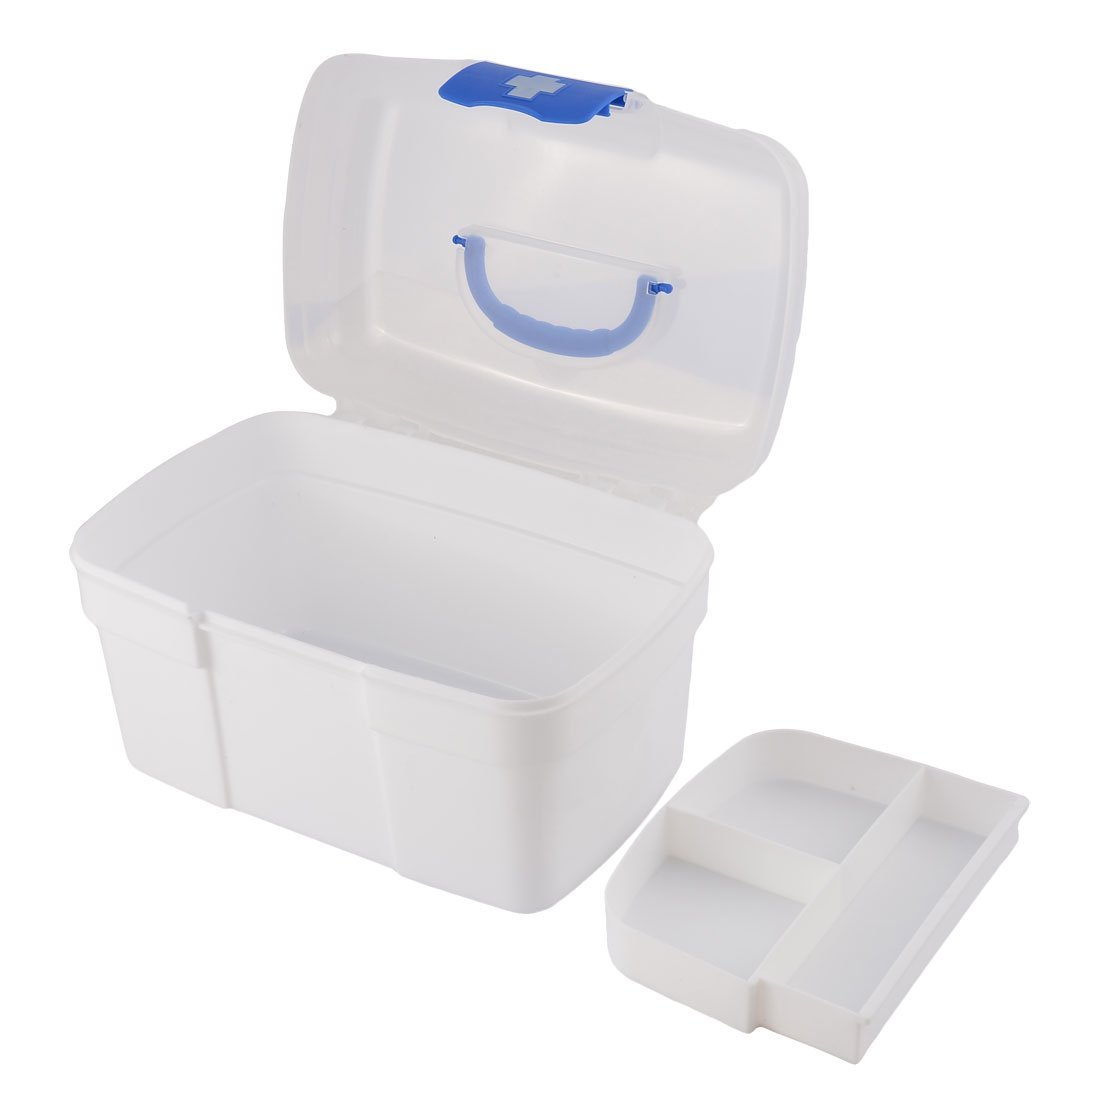 DealMux Plastic Household Pill Tablet Storage Box First Aid Case Medicine Container